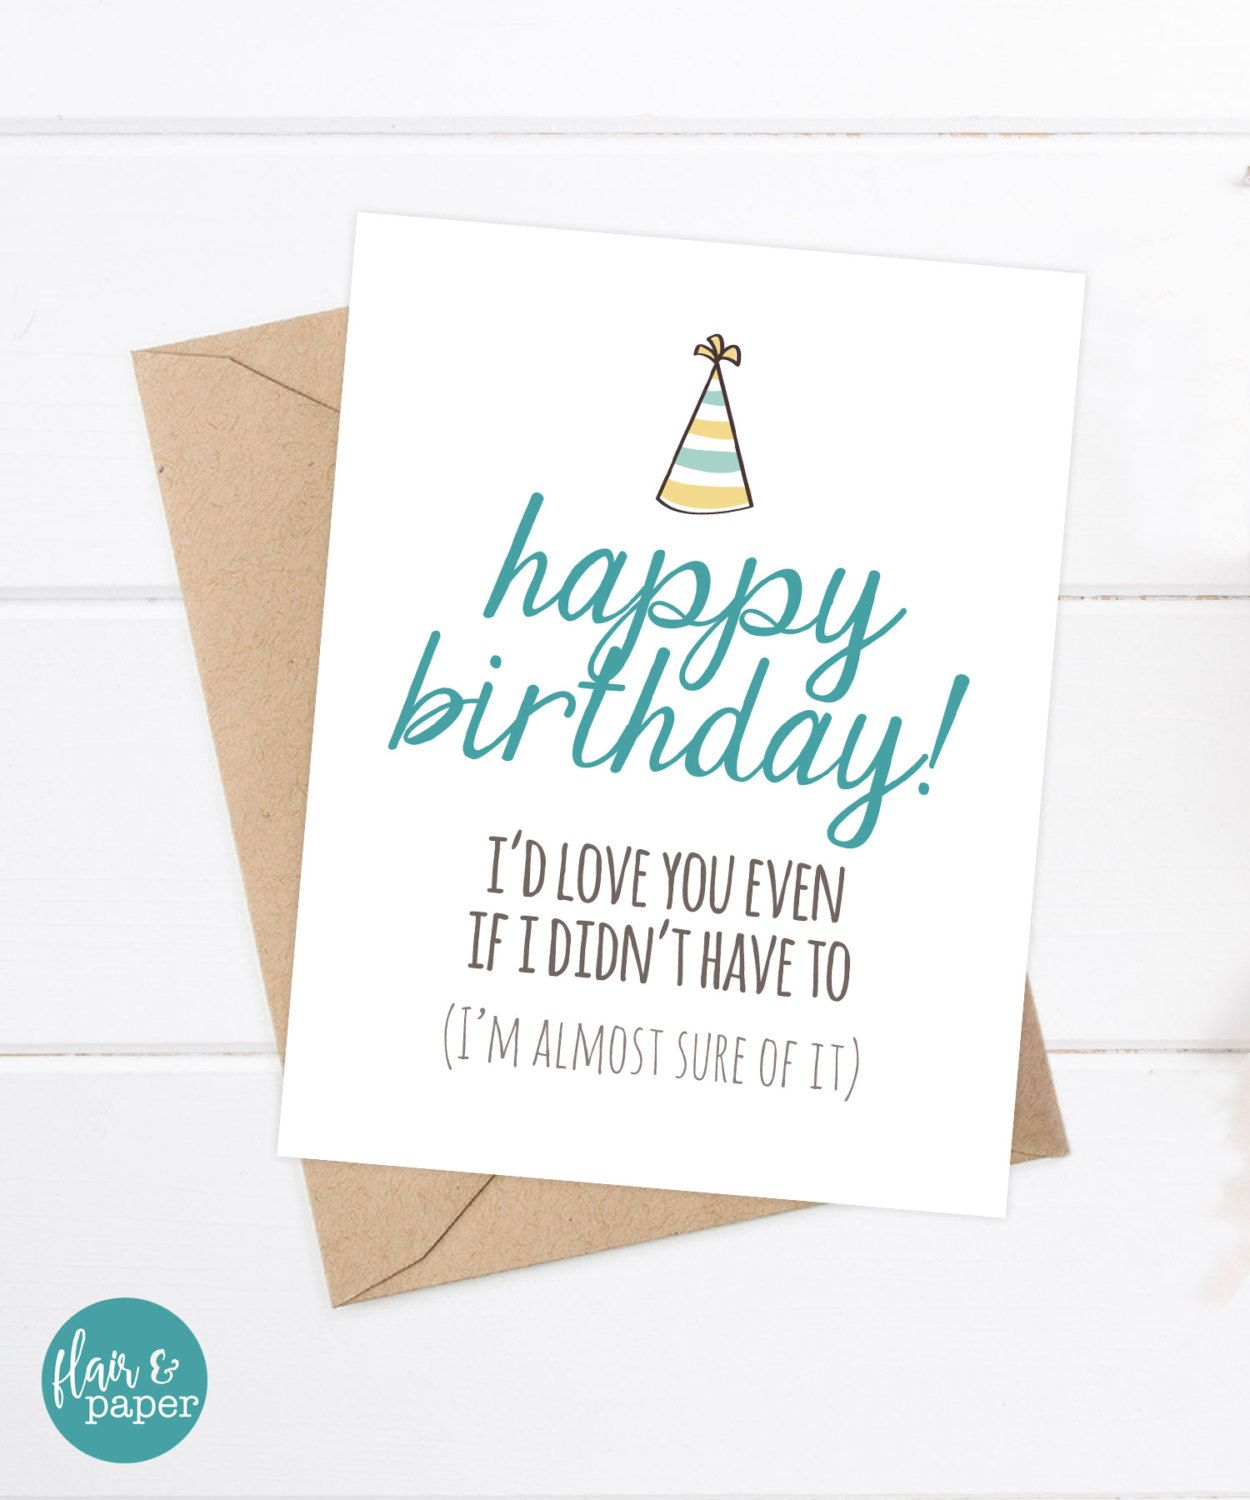 Funny birthday card funny sister birthday card funny brother funny birthday card funny sister birthday funny brother birthday happy birthday id love you even if i didnt have to bookmarktalkfo Images